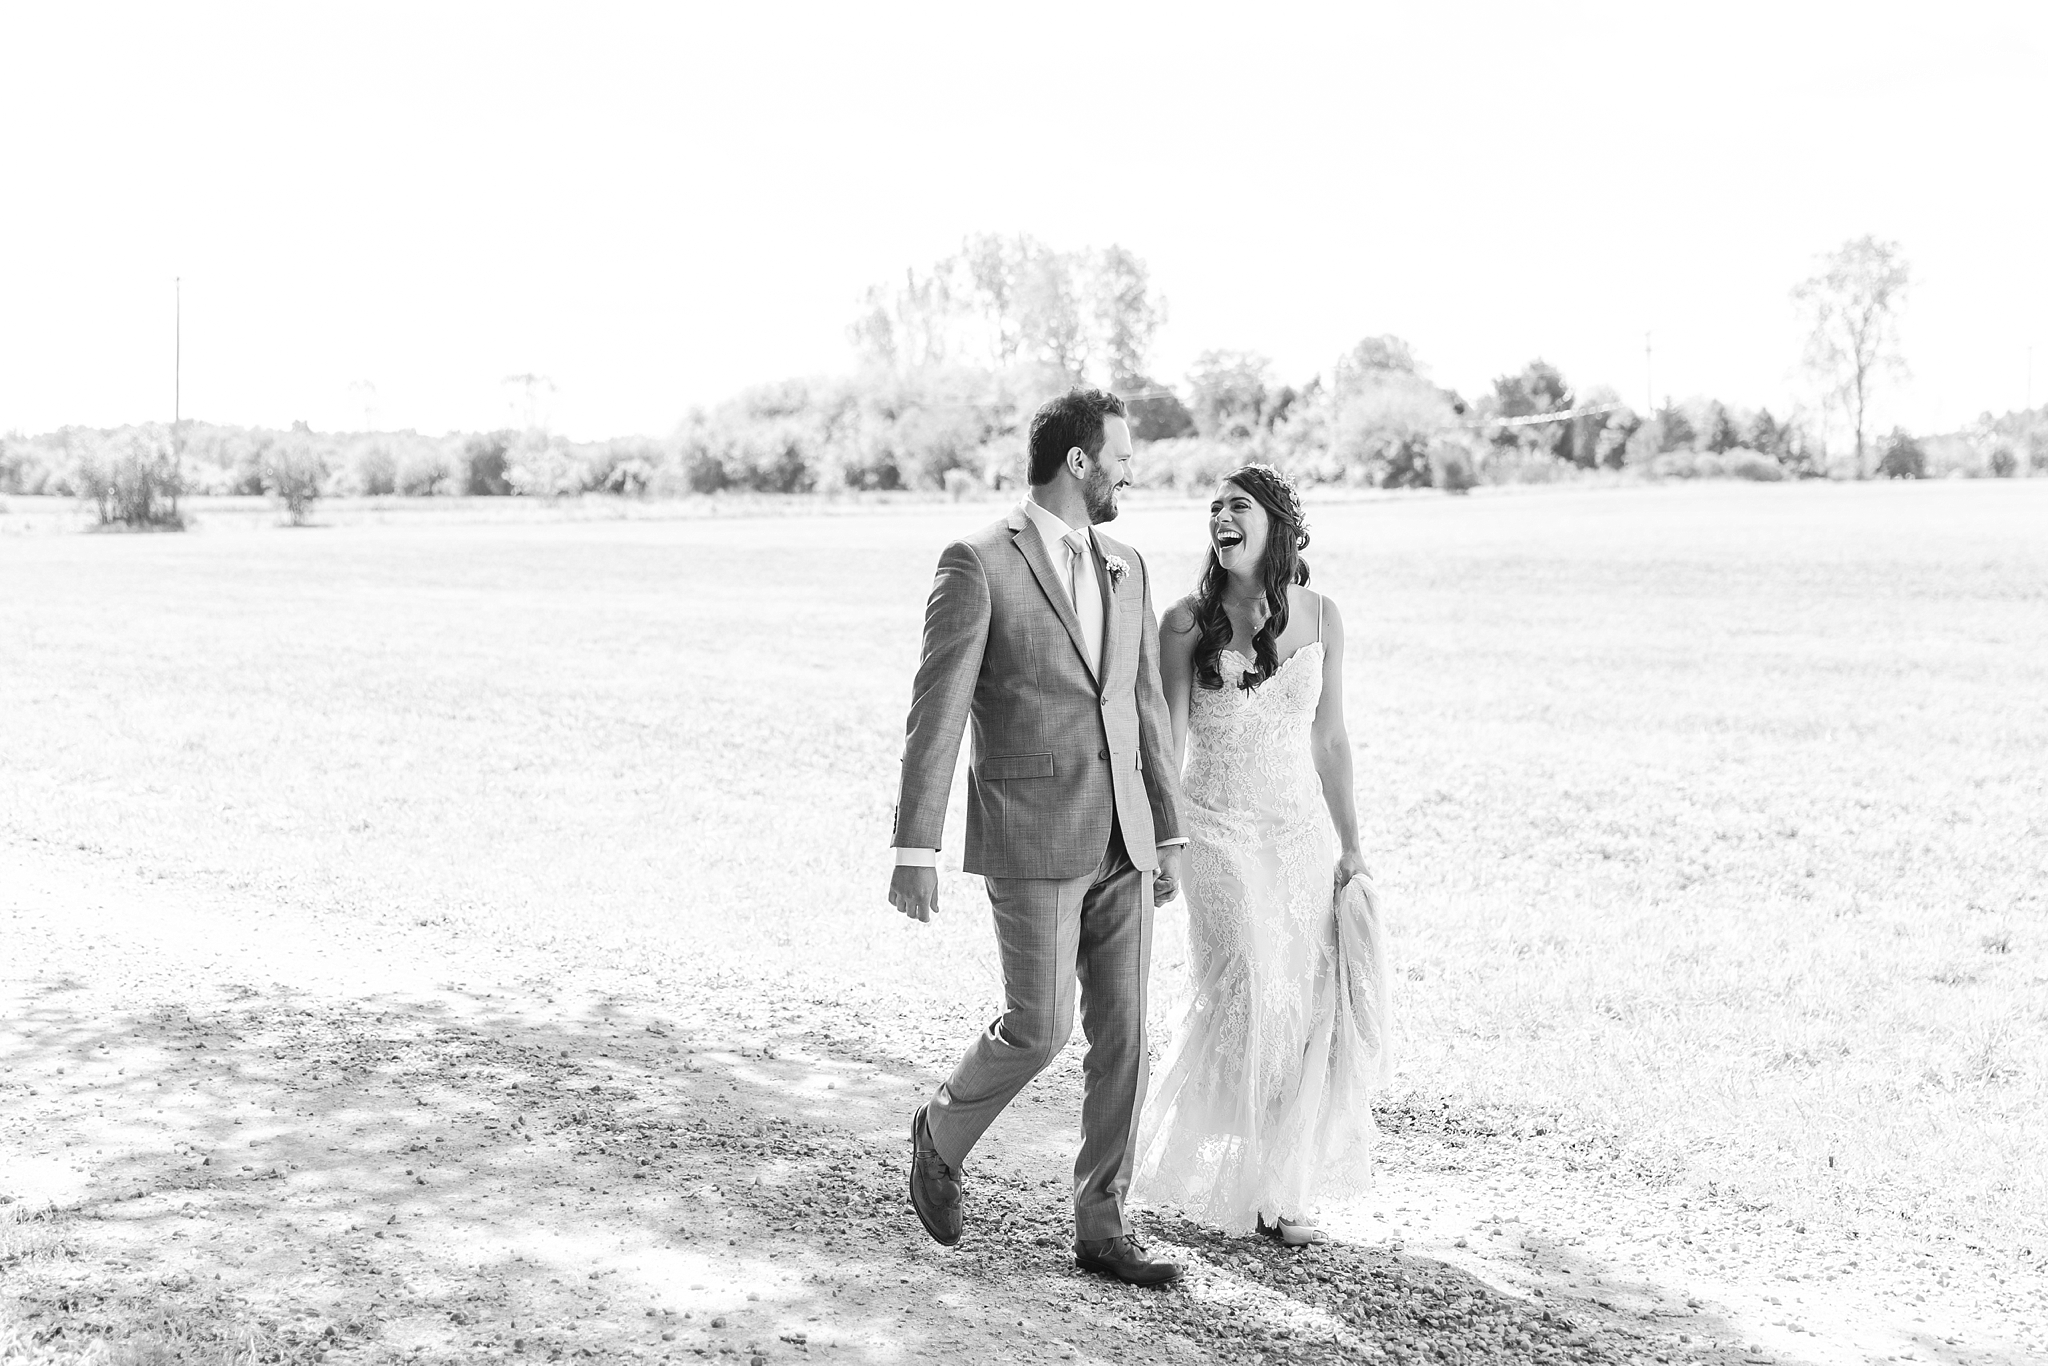 natural-rustic-wedding-photos-at-frutig-farms-the-valley-in-ann-arbor-michigan-by-courtney-carolyn-photography_0020.jpg